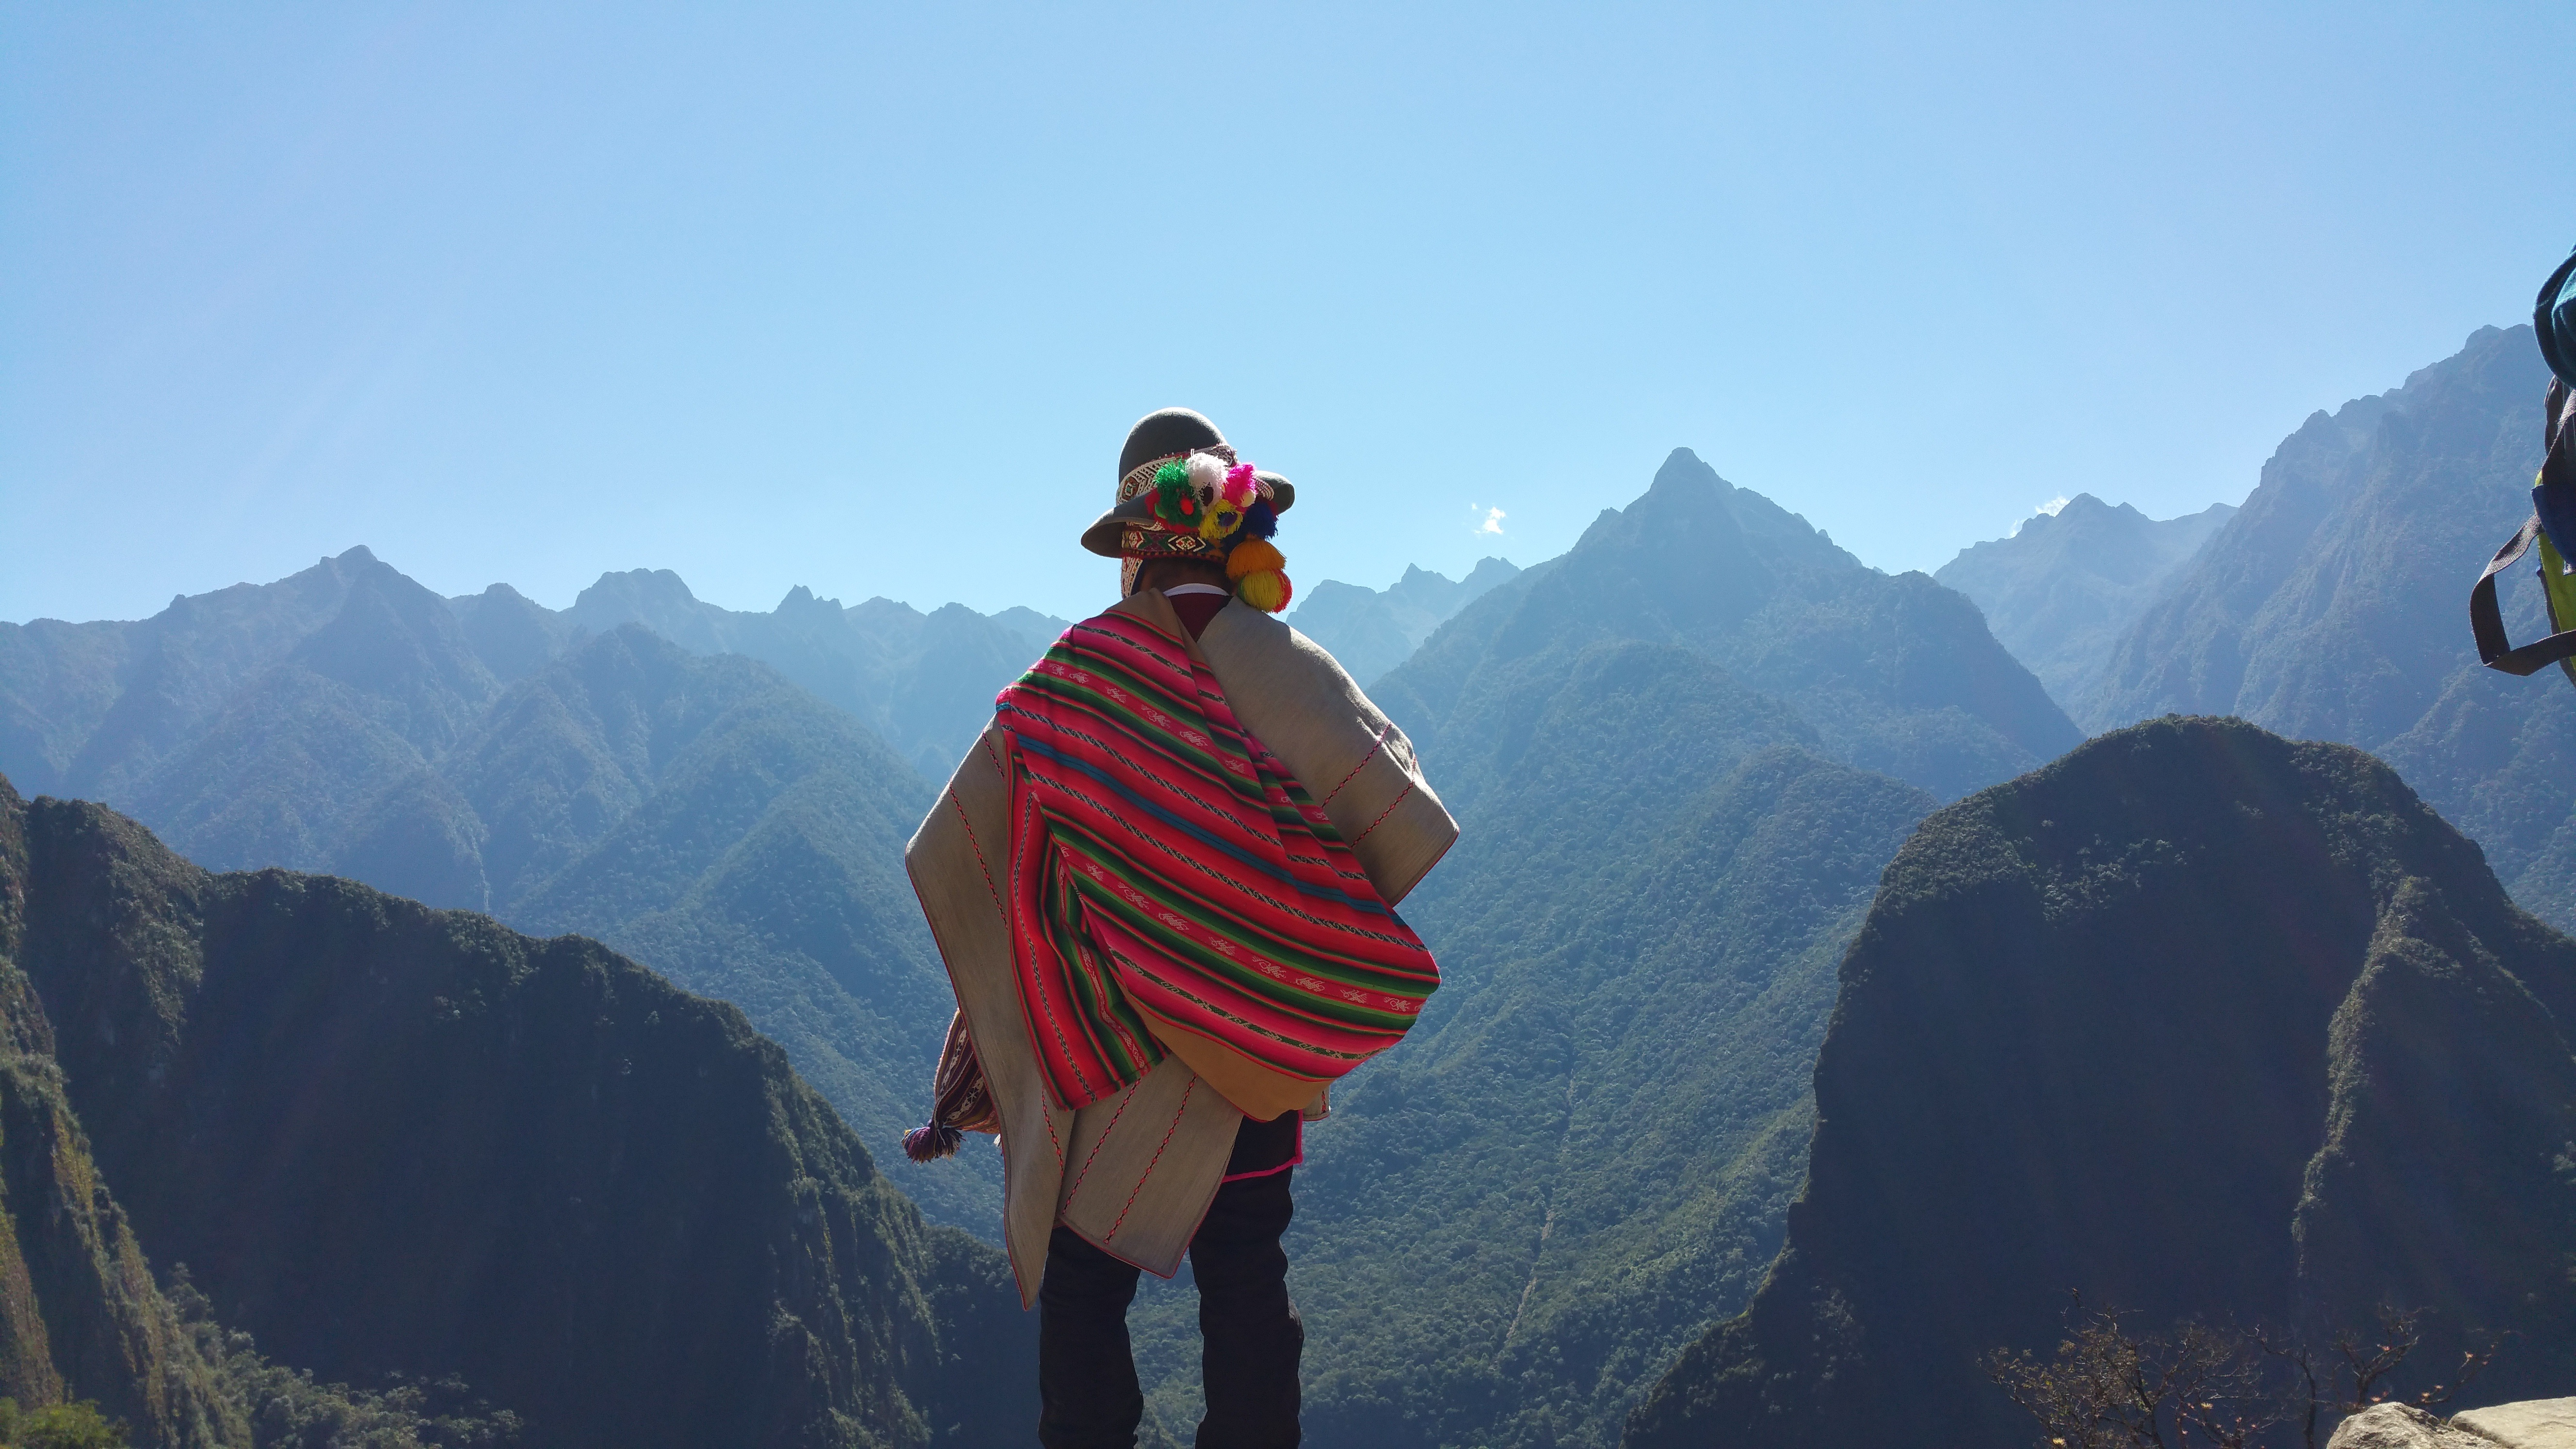 Andes_man